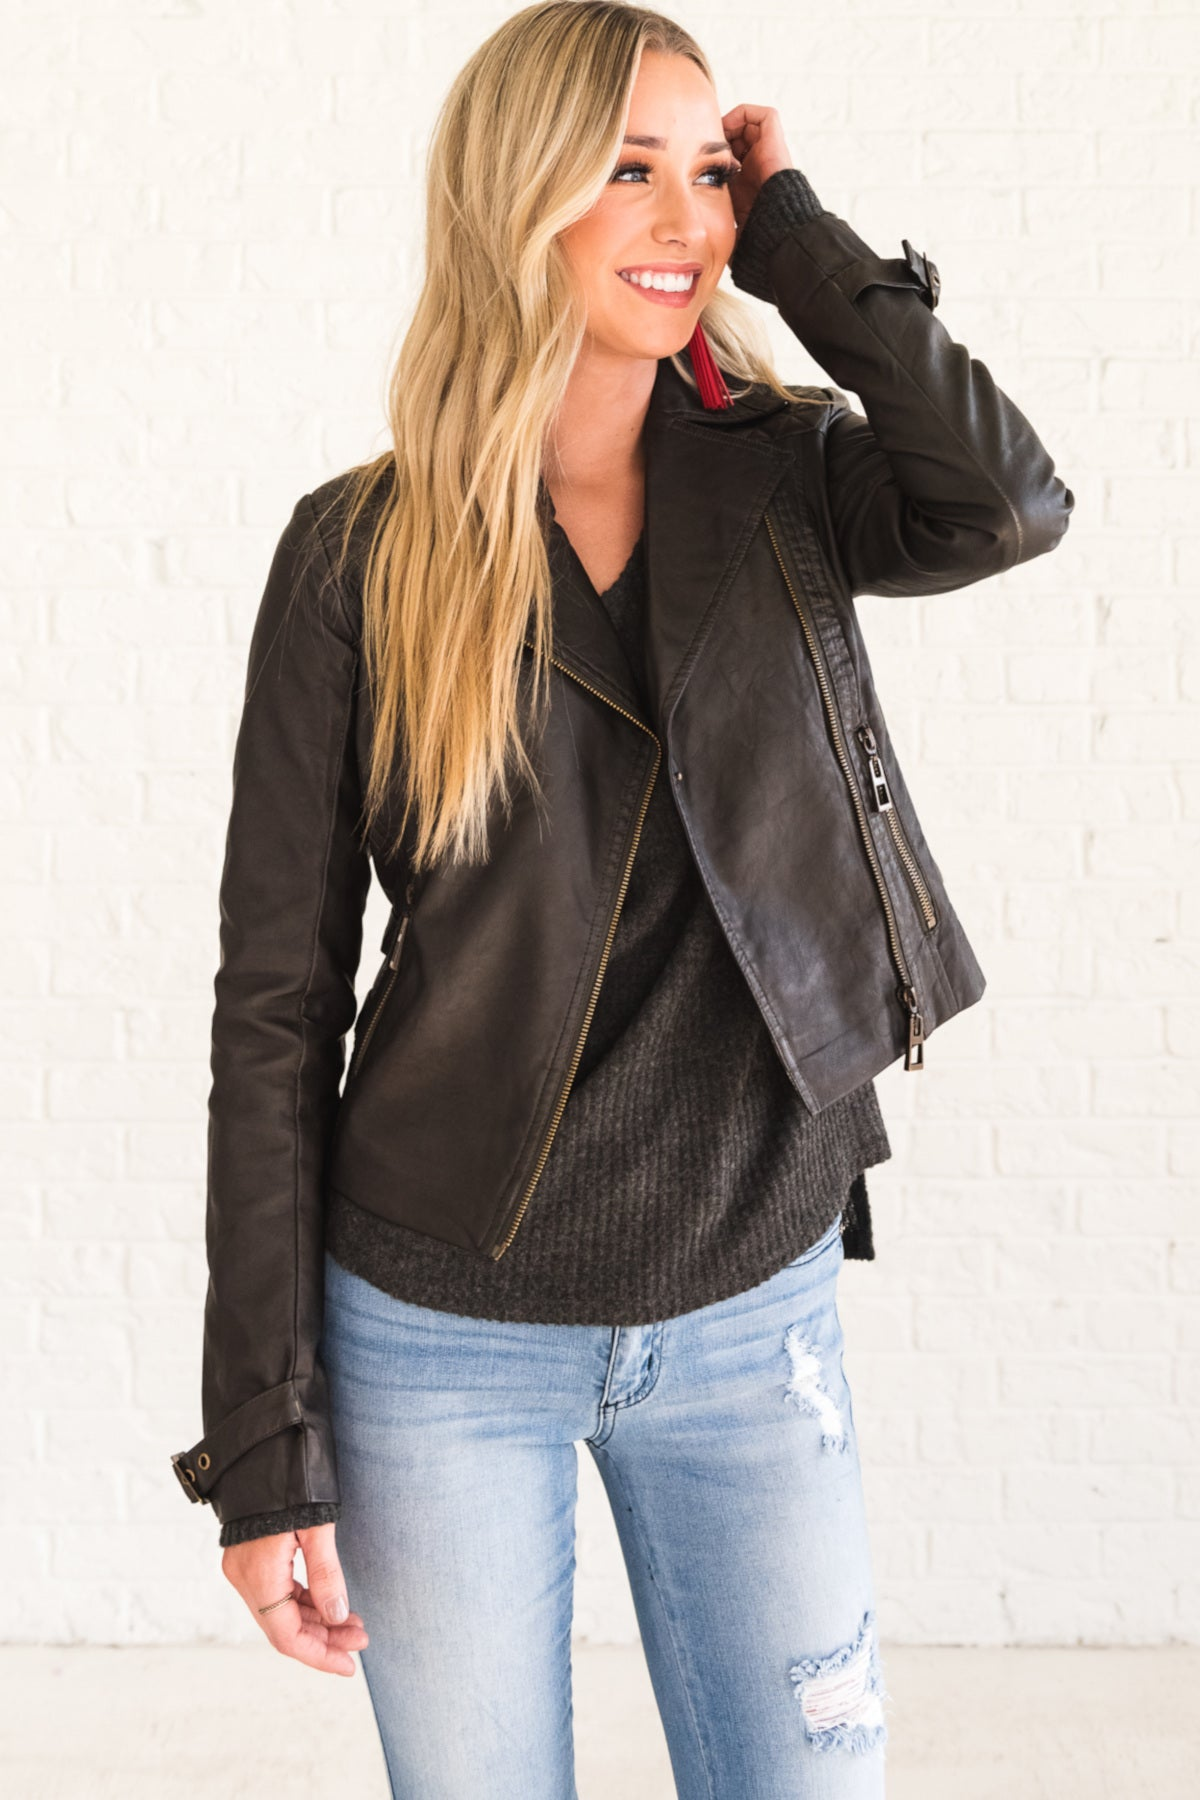 e40d800128a Faded Black Charcoal Gray Blanc Noir Faux Leather Jacket with Cropped Length